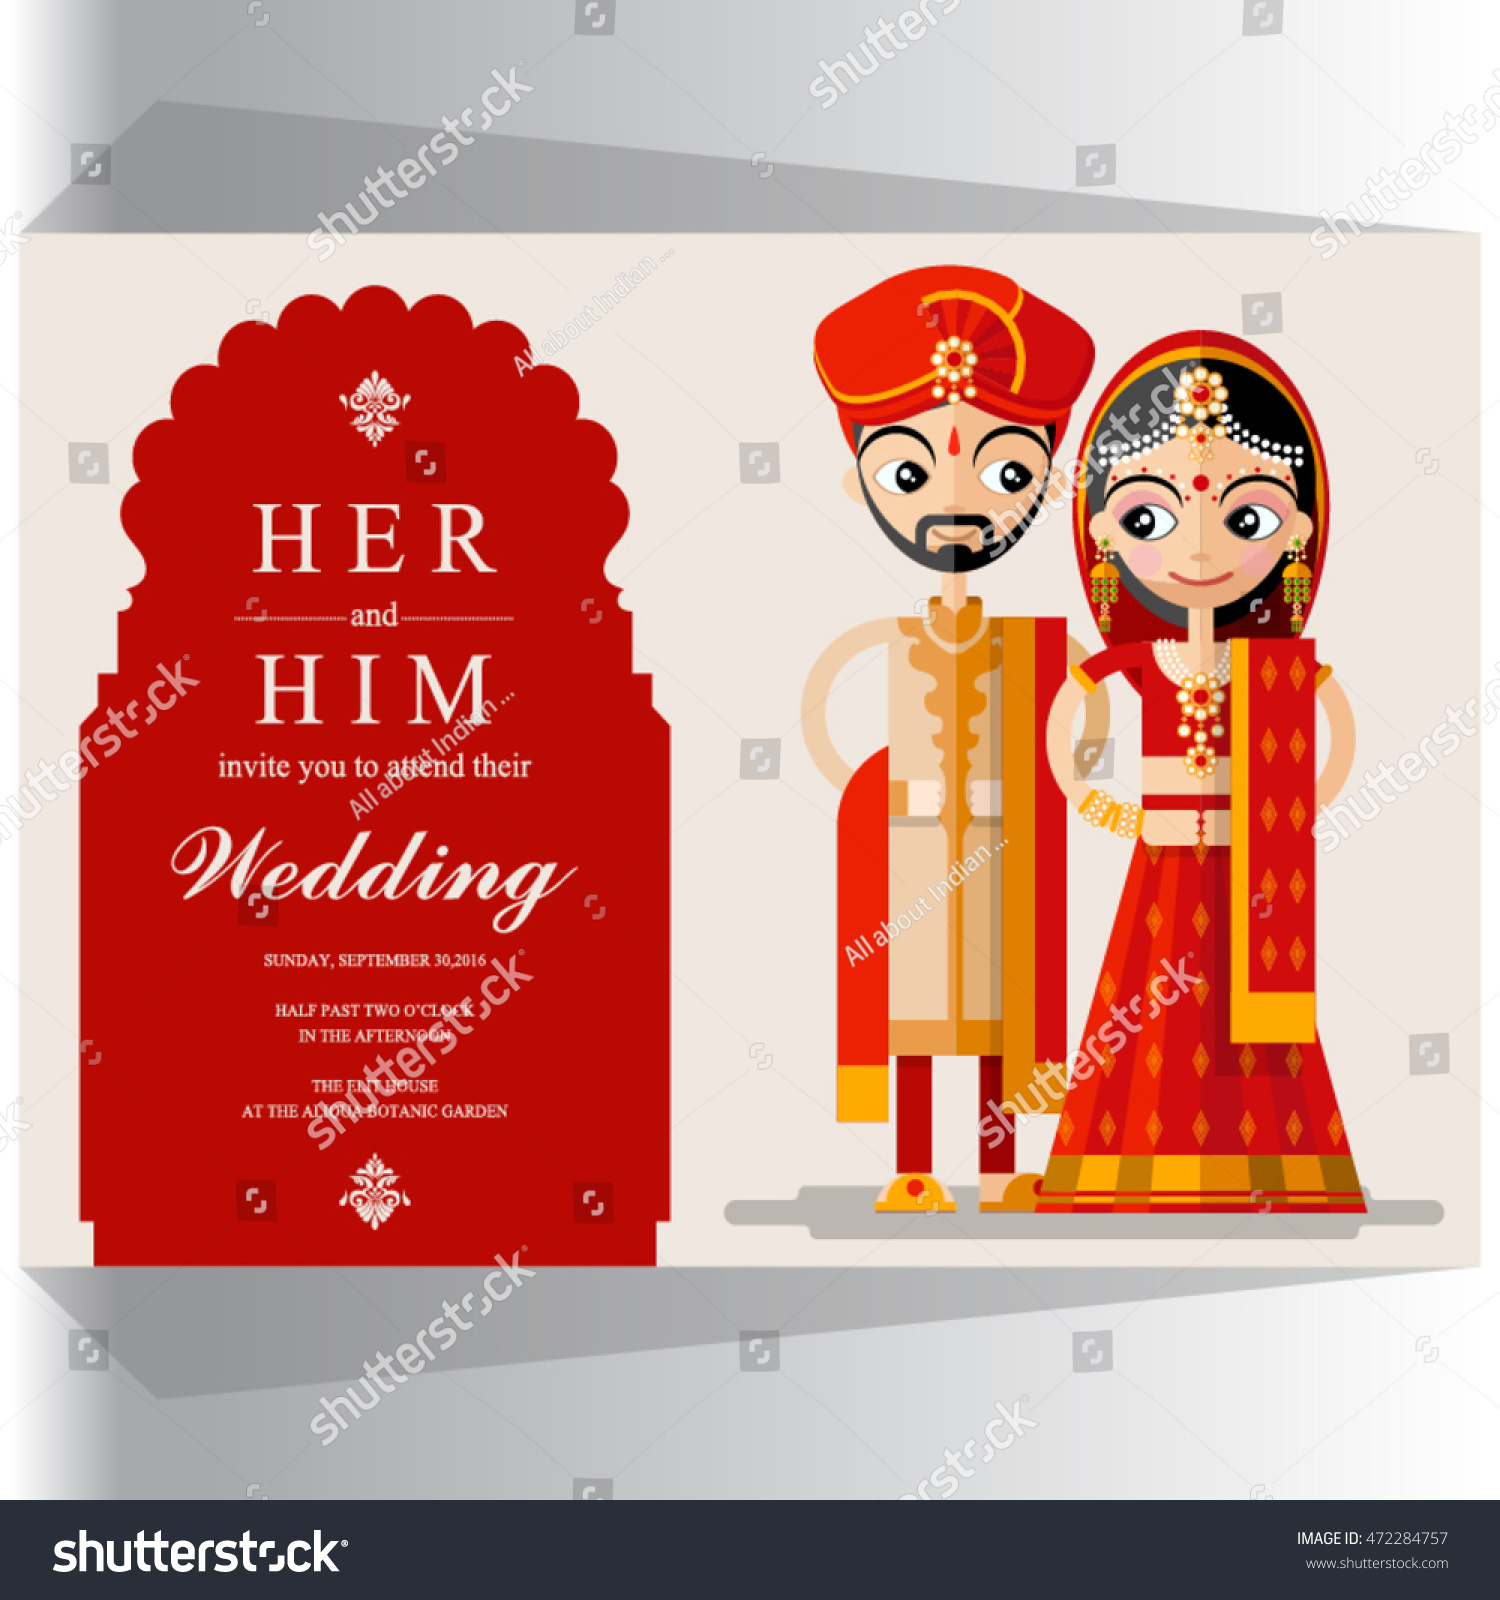 Indian Wedding Invitation Card Stock Vector (Royalty Free) 472284757 ...